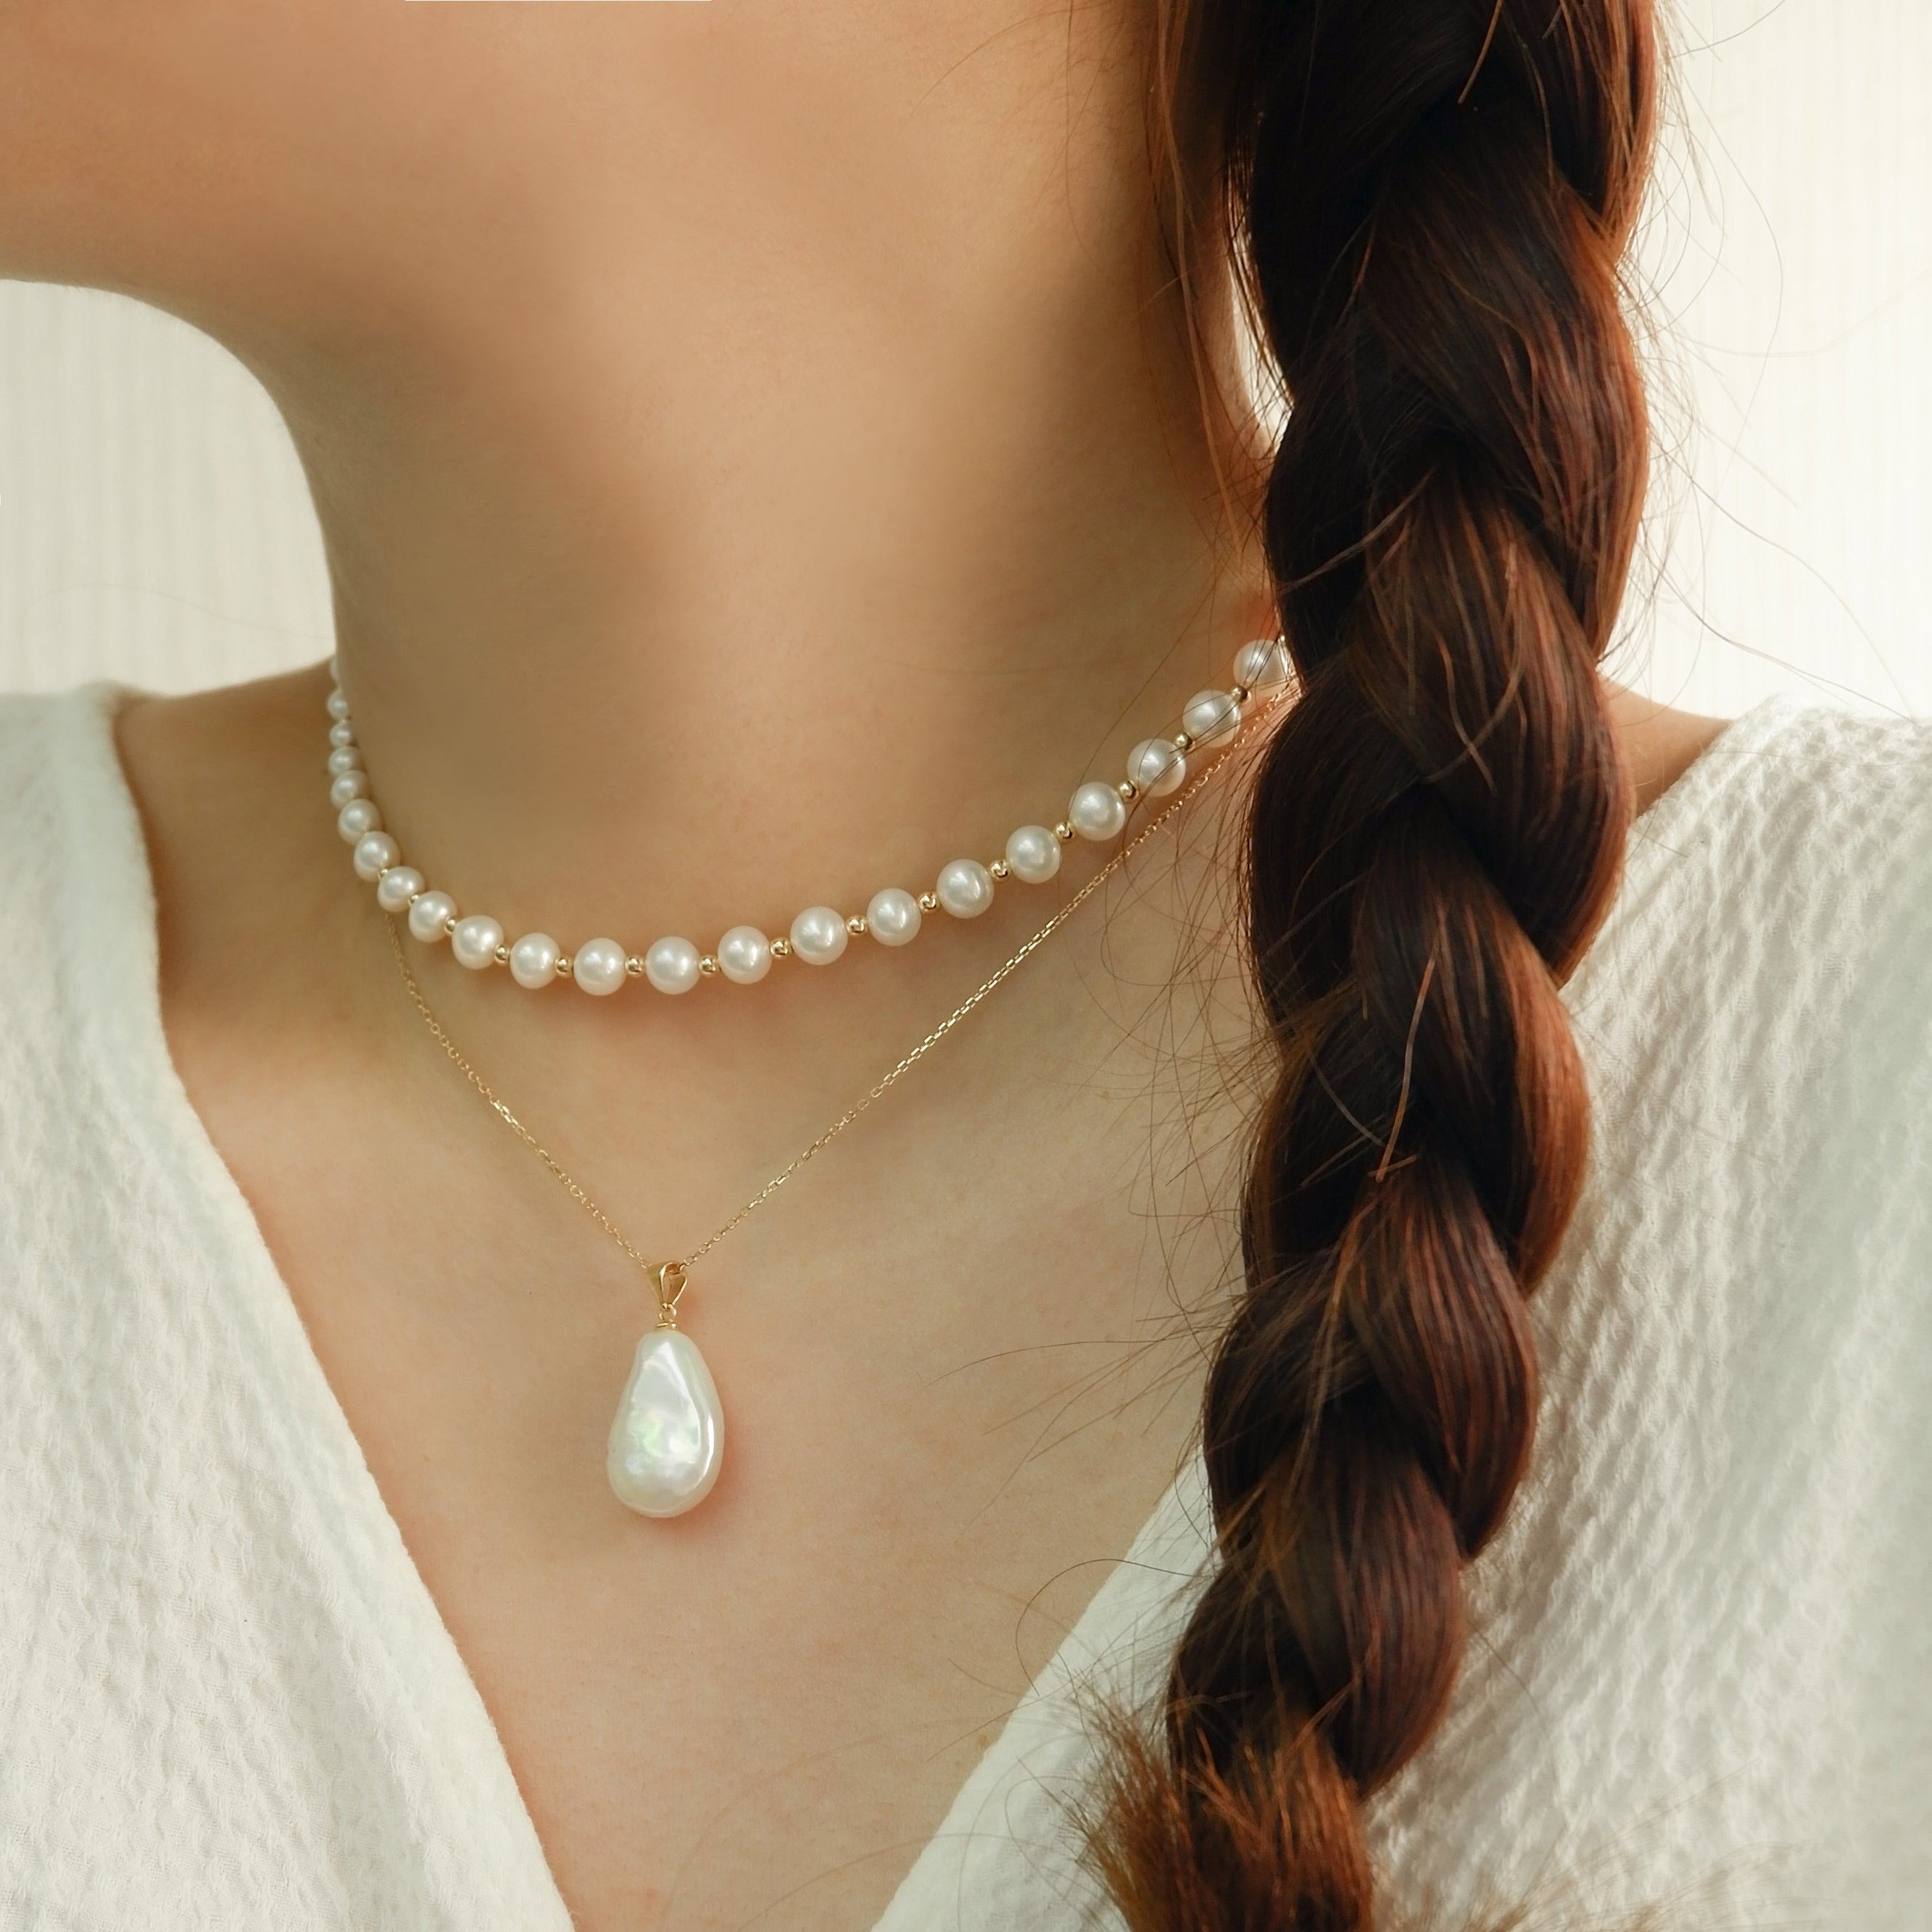 DOUBLE LOVE PEARL BEADED NECKLACE